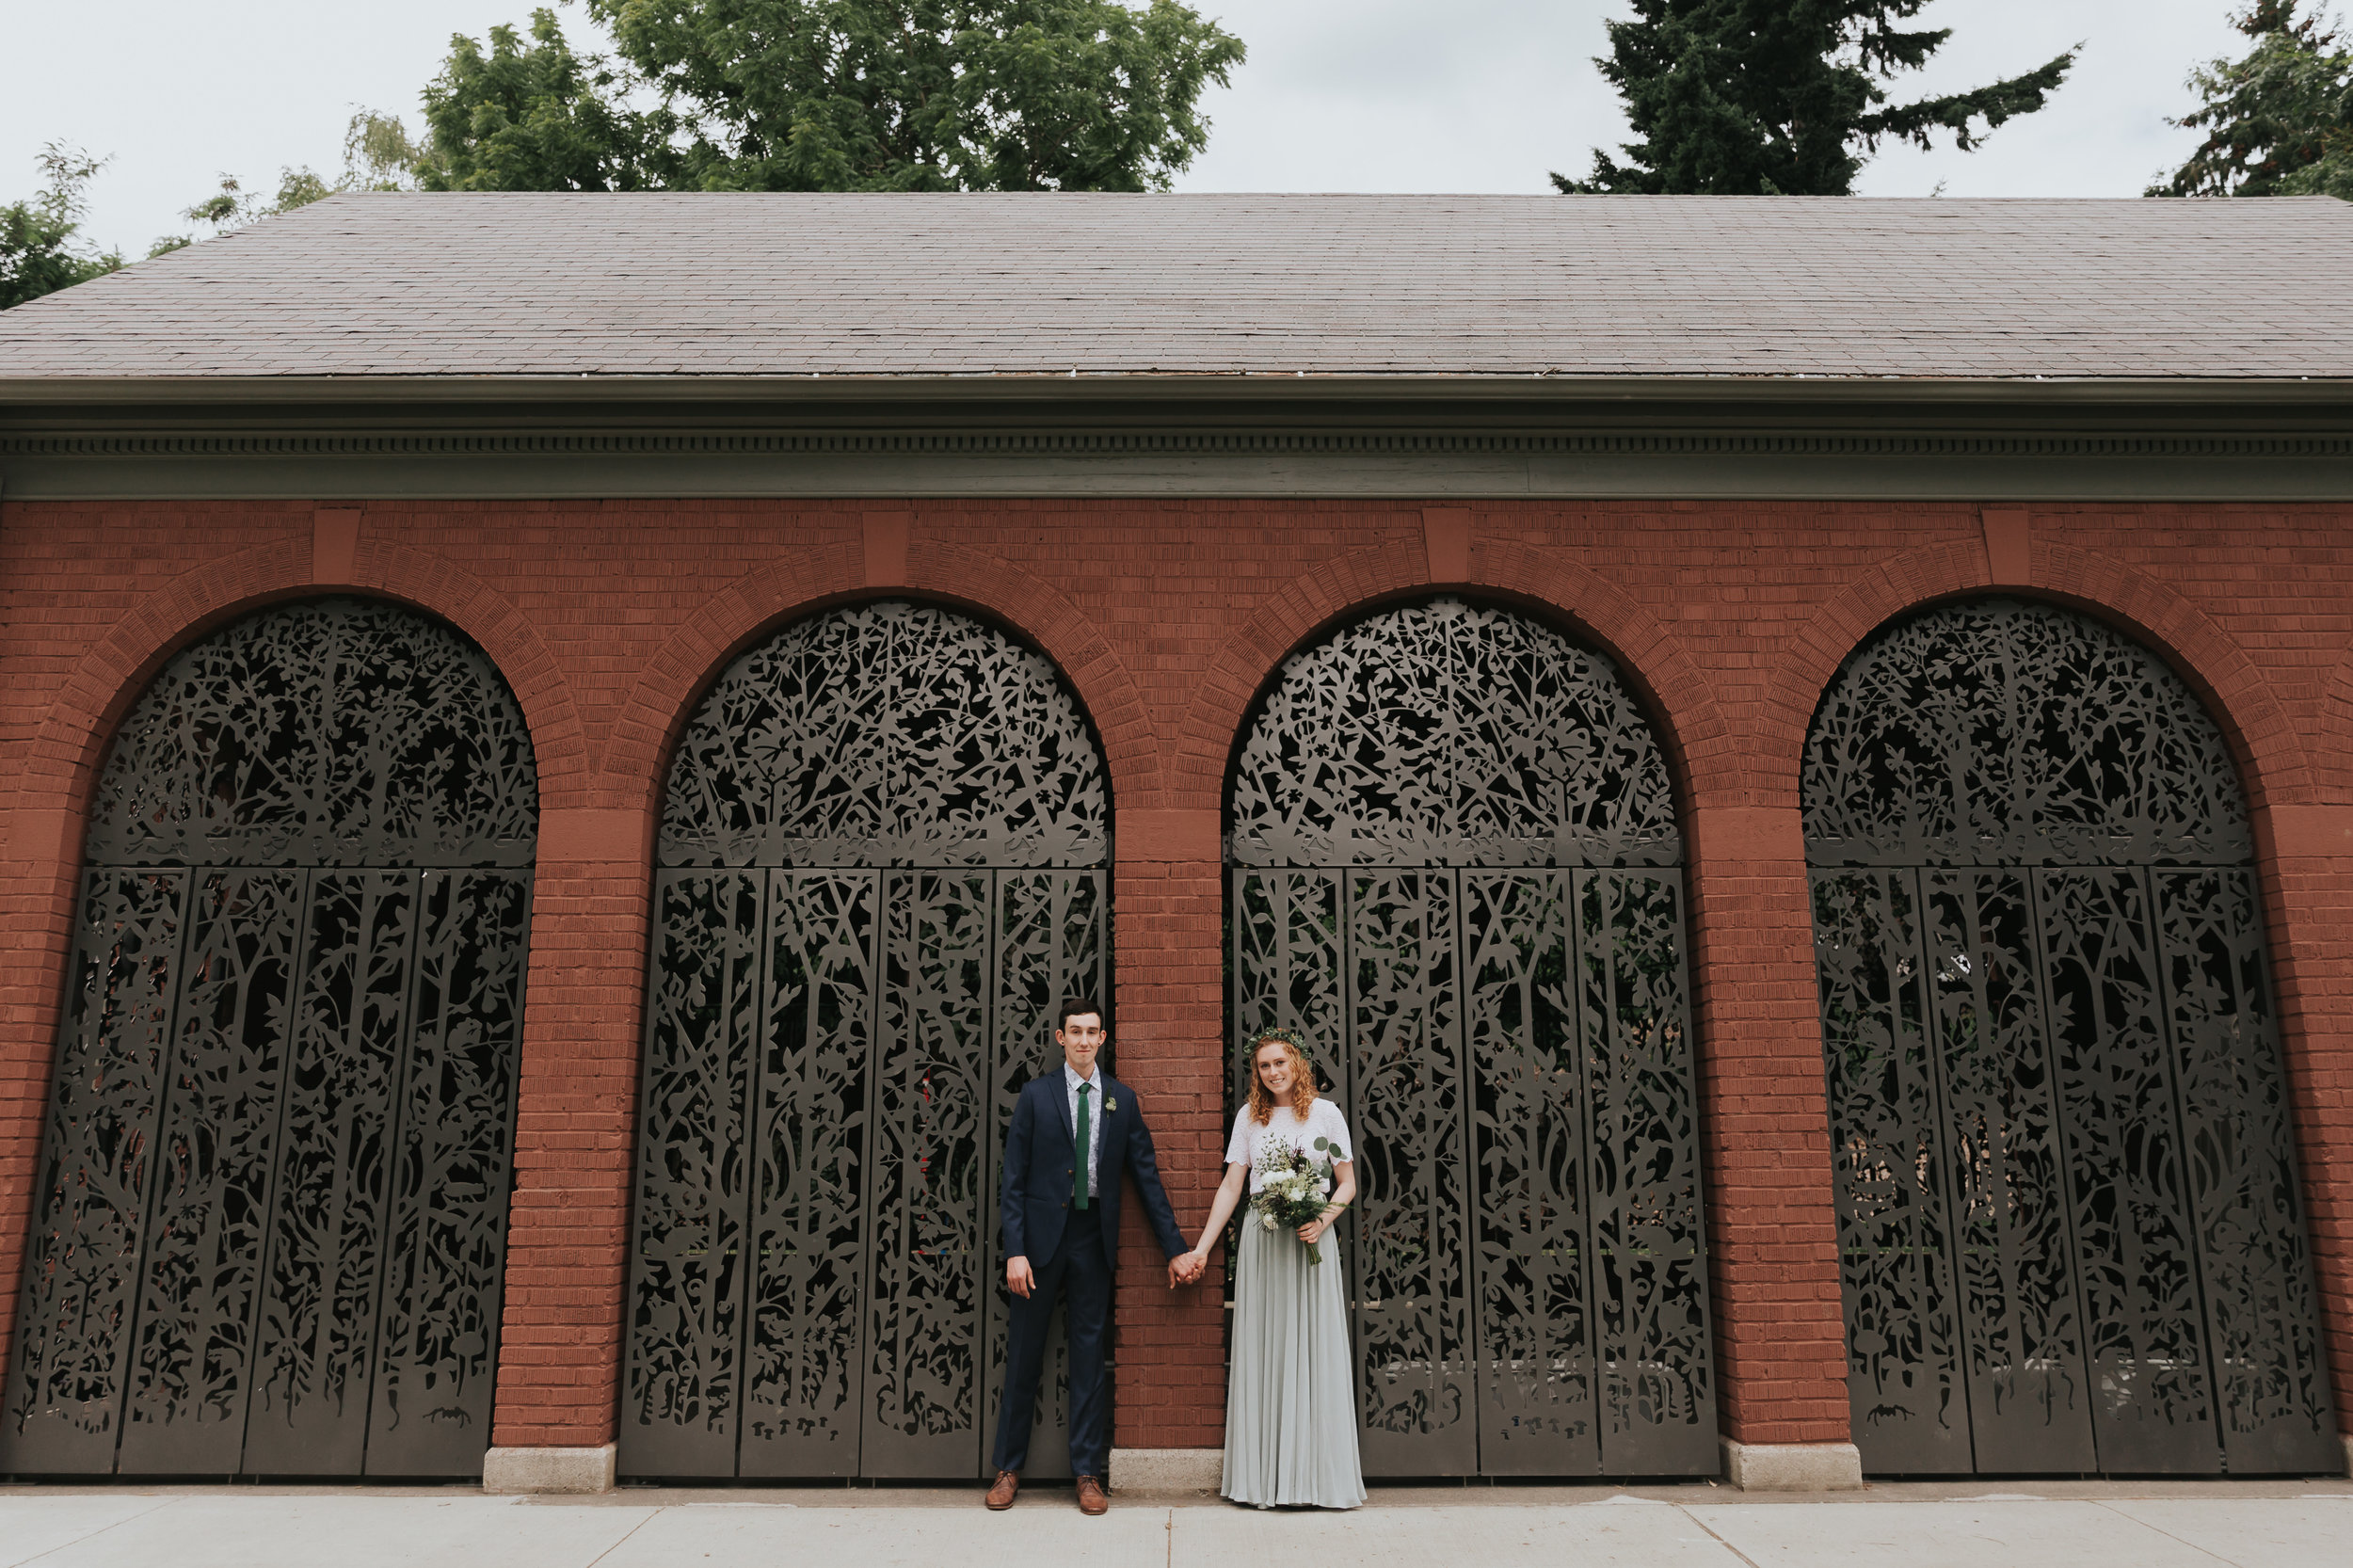 Ragan & Max in front of the Colonel Summers Park gates that Max designed!